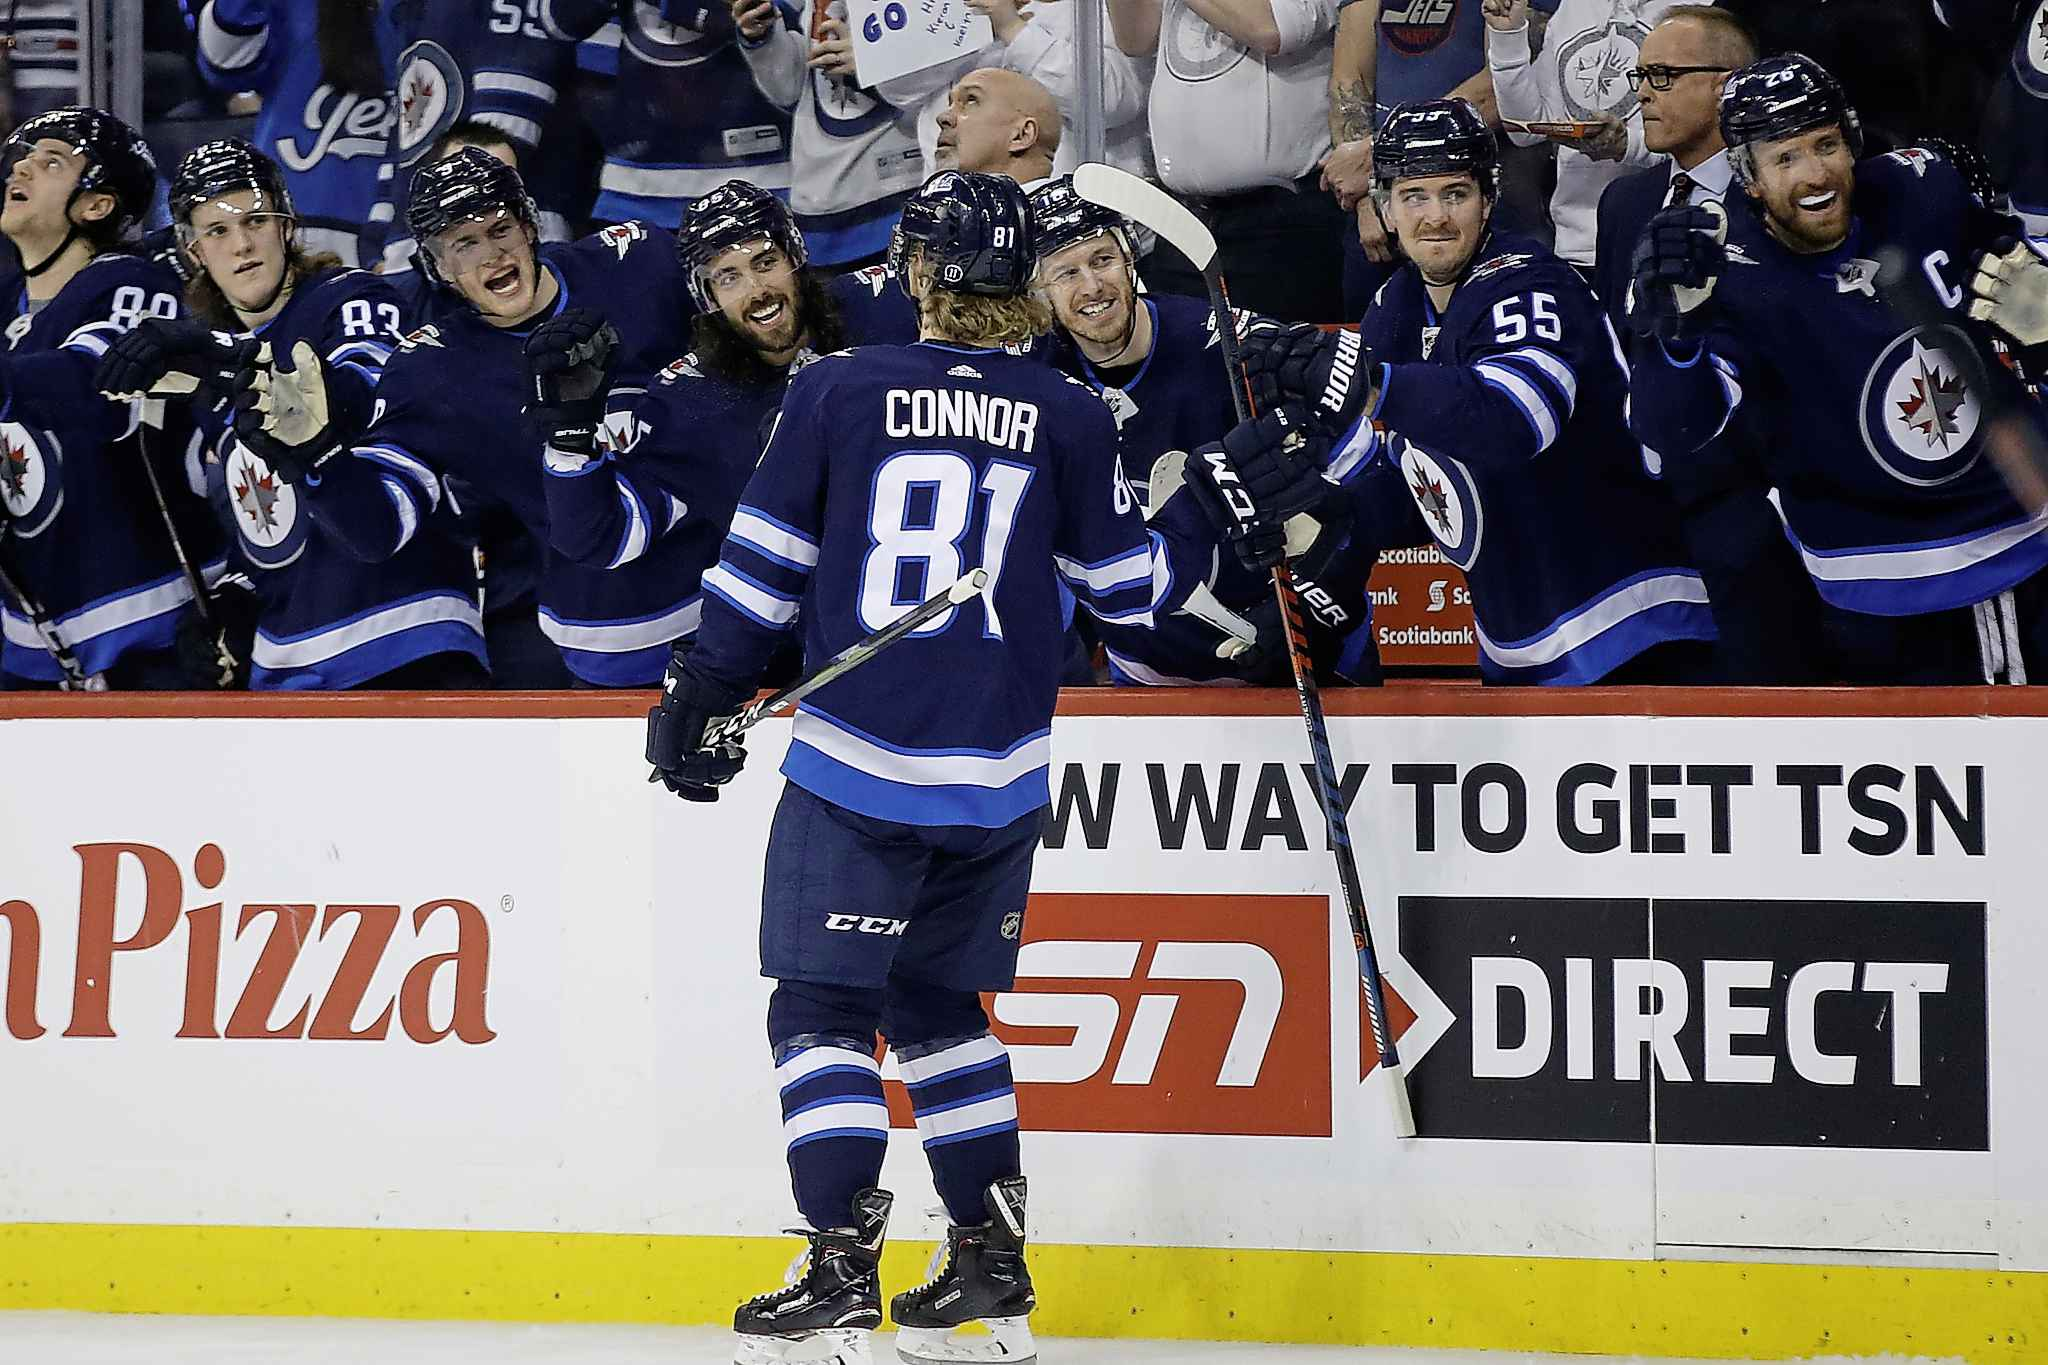 JOHN WOODS / THE CANADIAN PRESS</p><p>Winnipeg Jets celebrate from the bench as Kyle Connor (81) skates by during second period NHL action against the Nashville Predators, in Winnipeg on Saturday, March 23, 2019.</p>